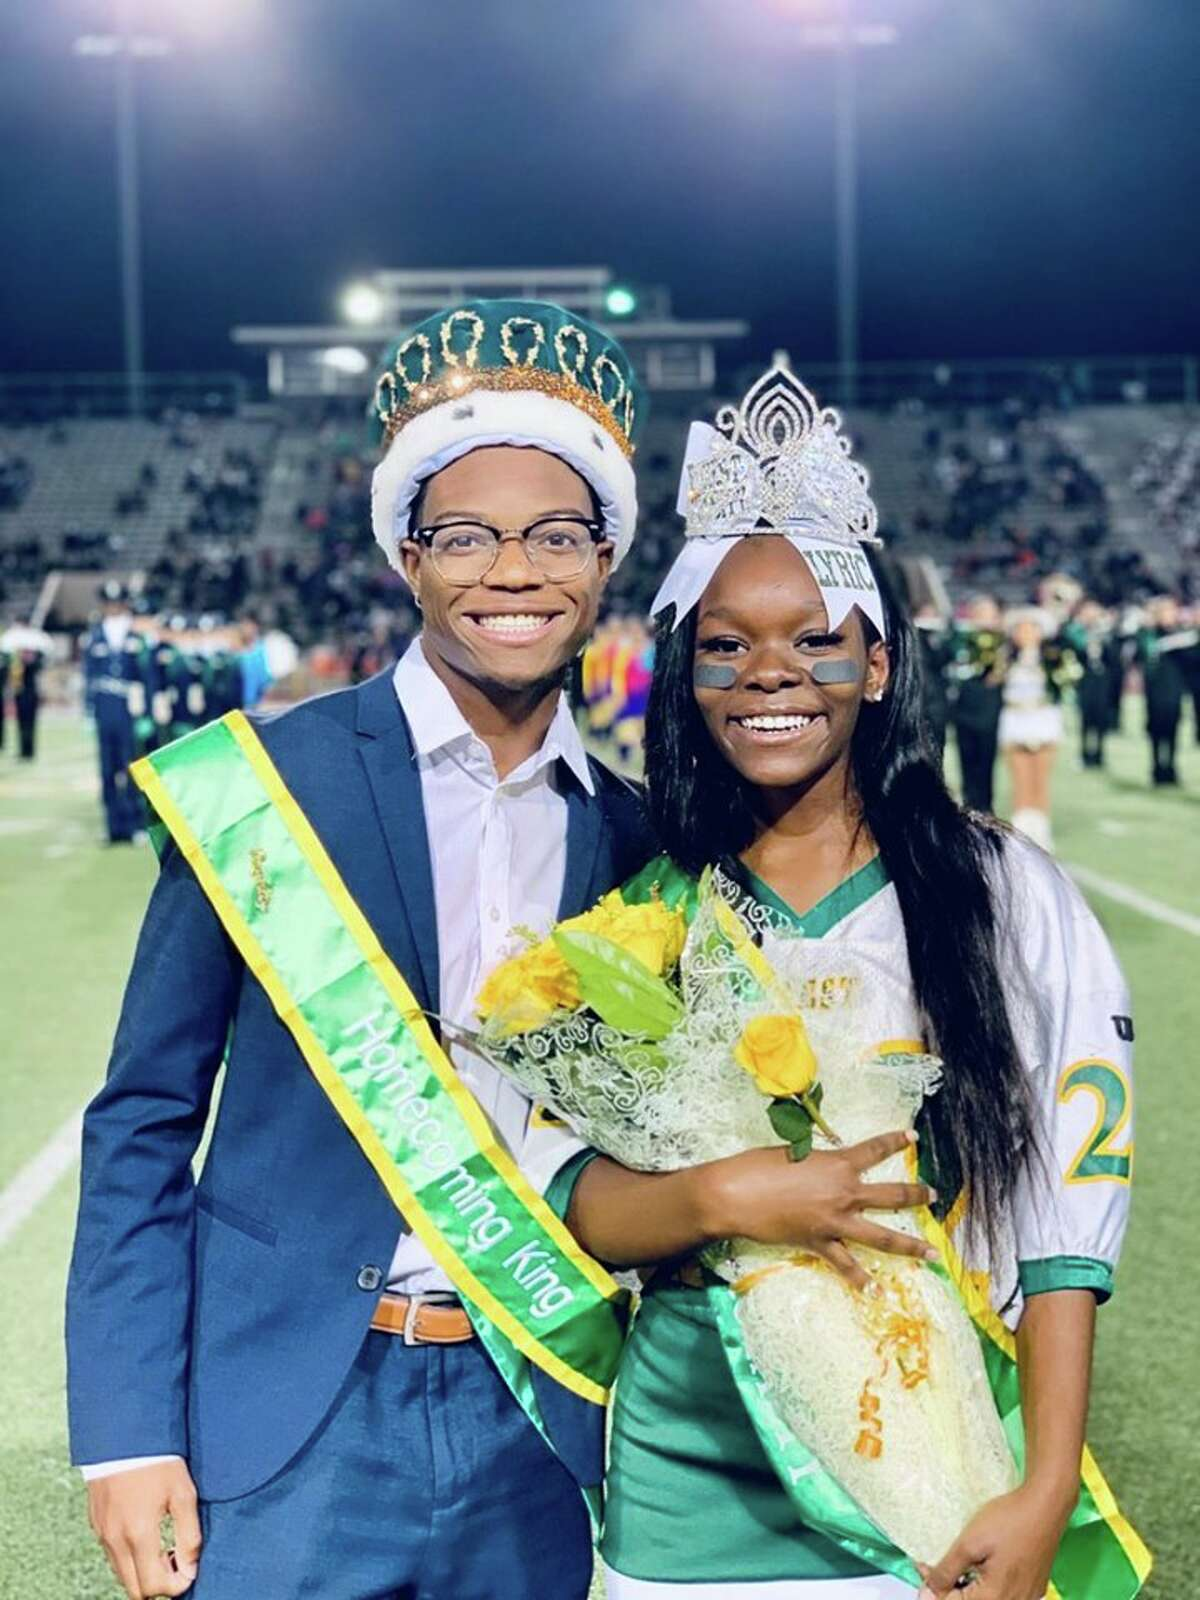 The Klein Forest High School homecoming king and queen, Auhmad Robinson and Lyric Coleman.